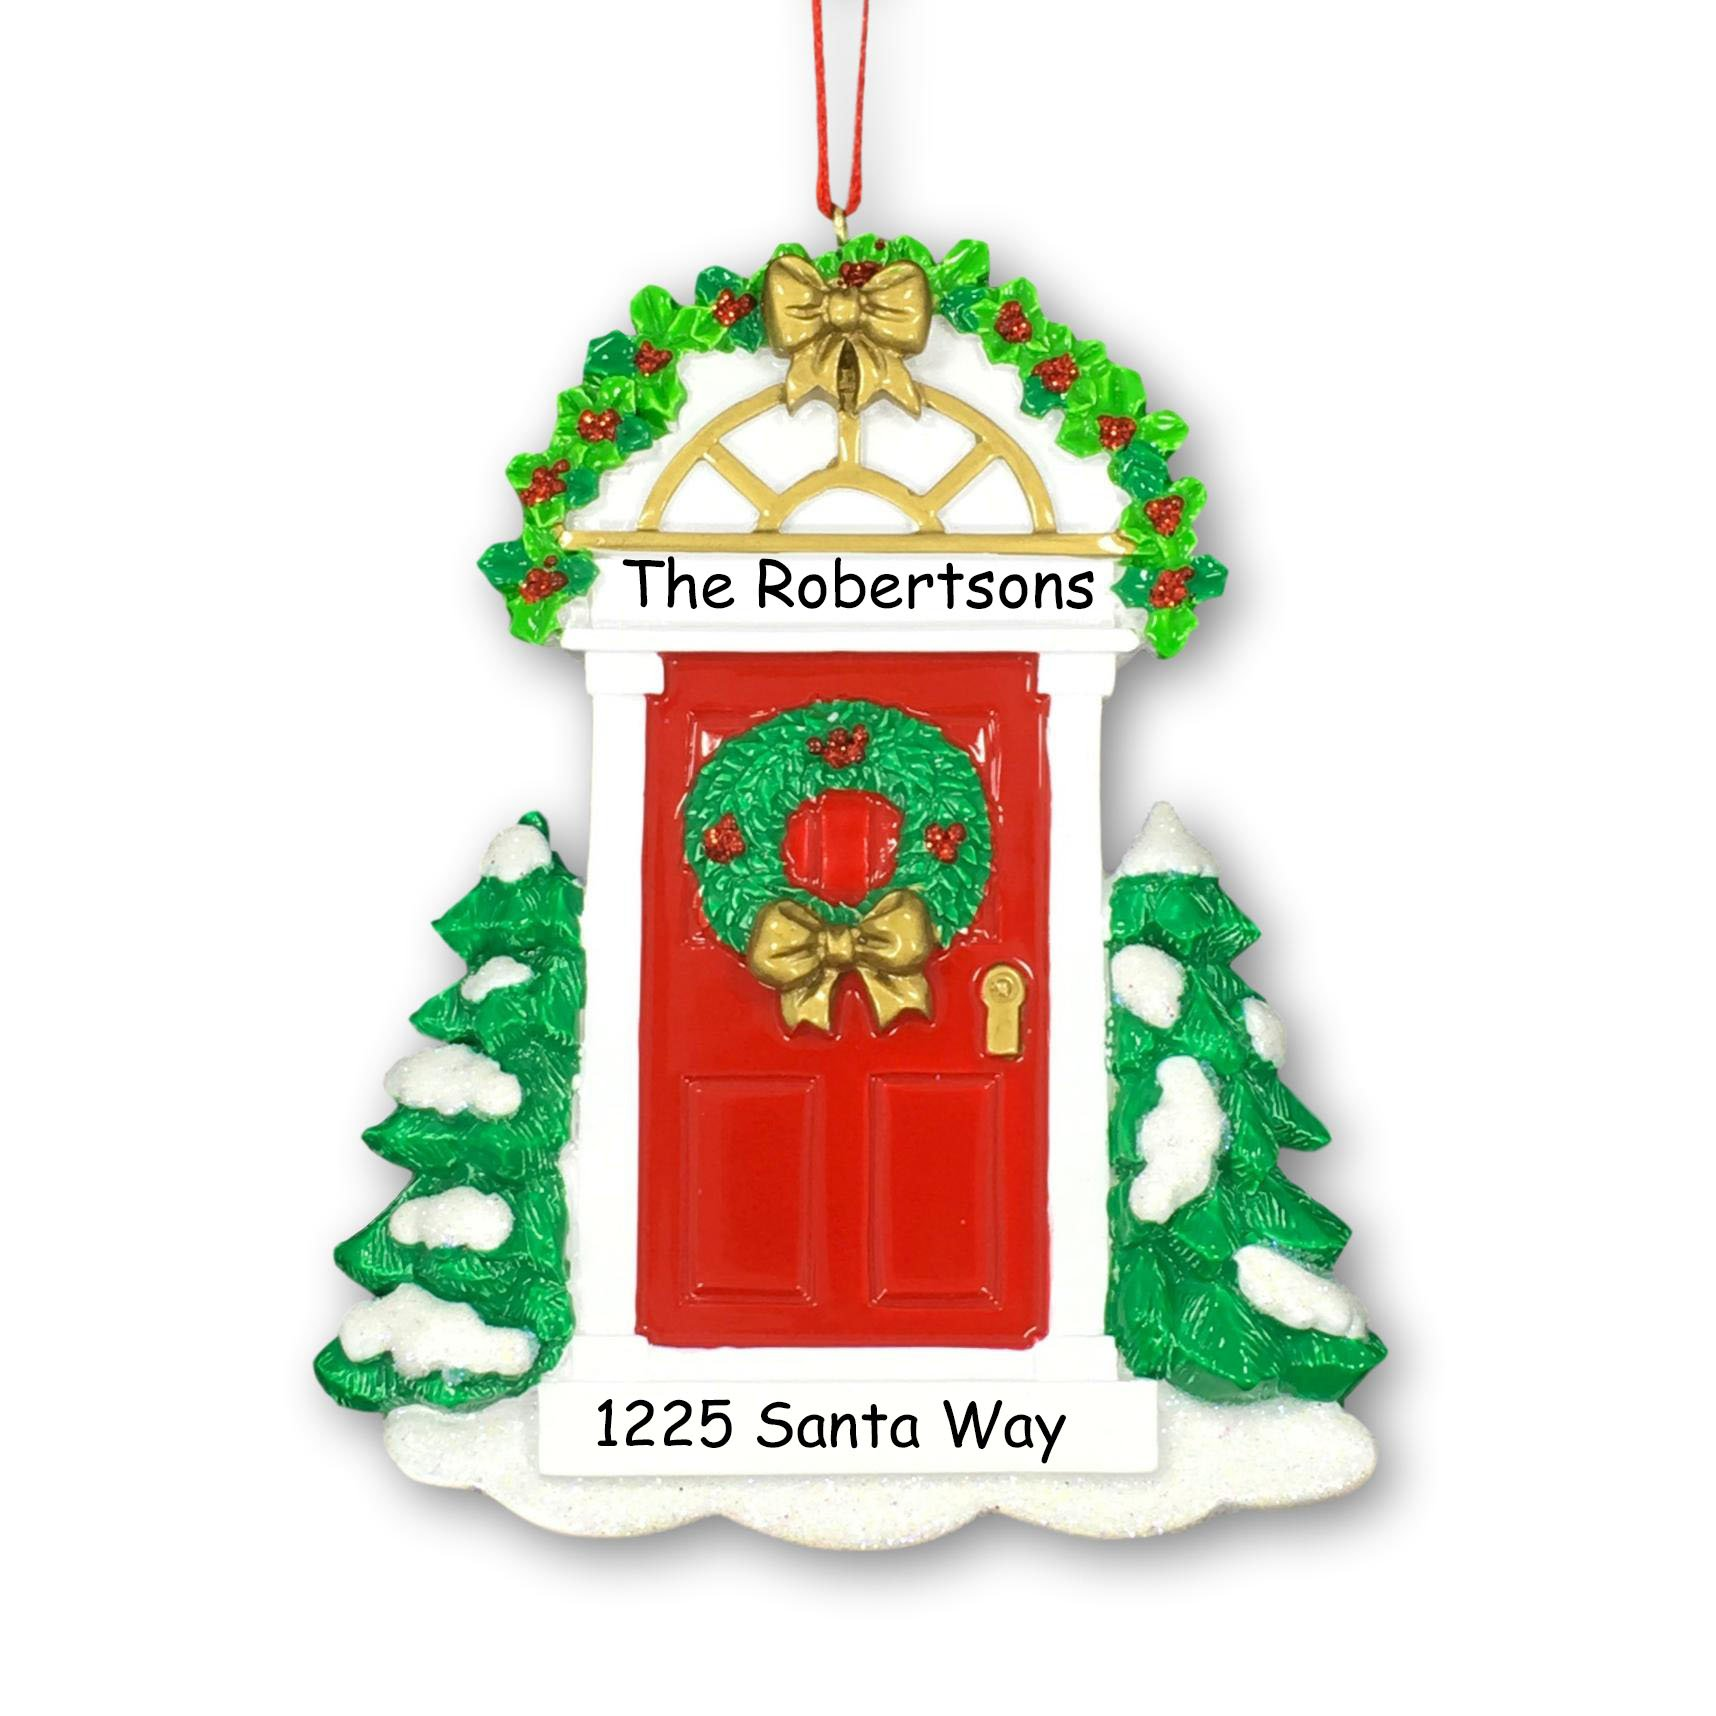 Personalized Christmas New Home First Home Red Door Wreath Holly Christmas Ornament with Names and Address